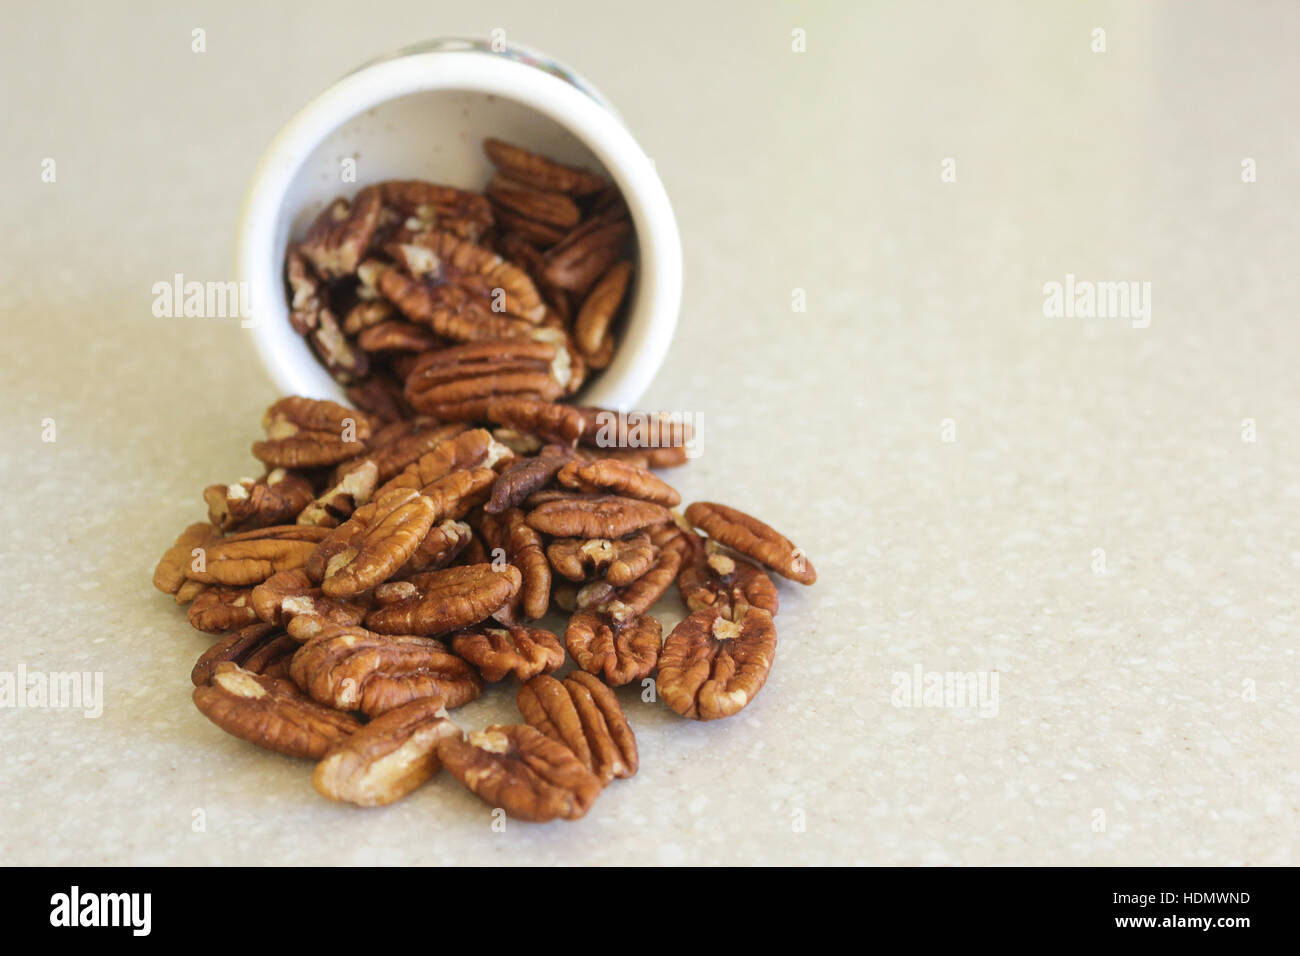 Delicious pecans spilling out of a container on a kitchen countertop, ready to enjoy as a snack or in a favorite - Stock Image